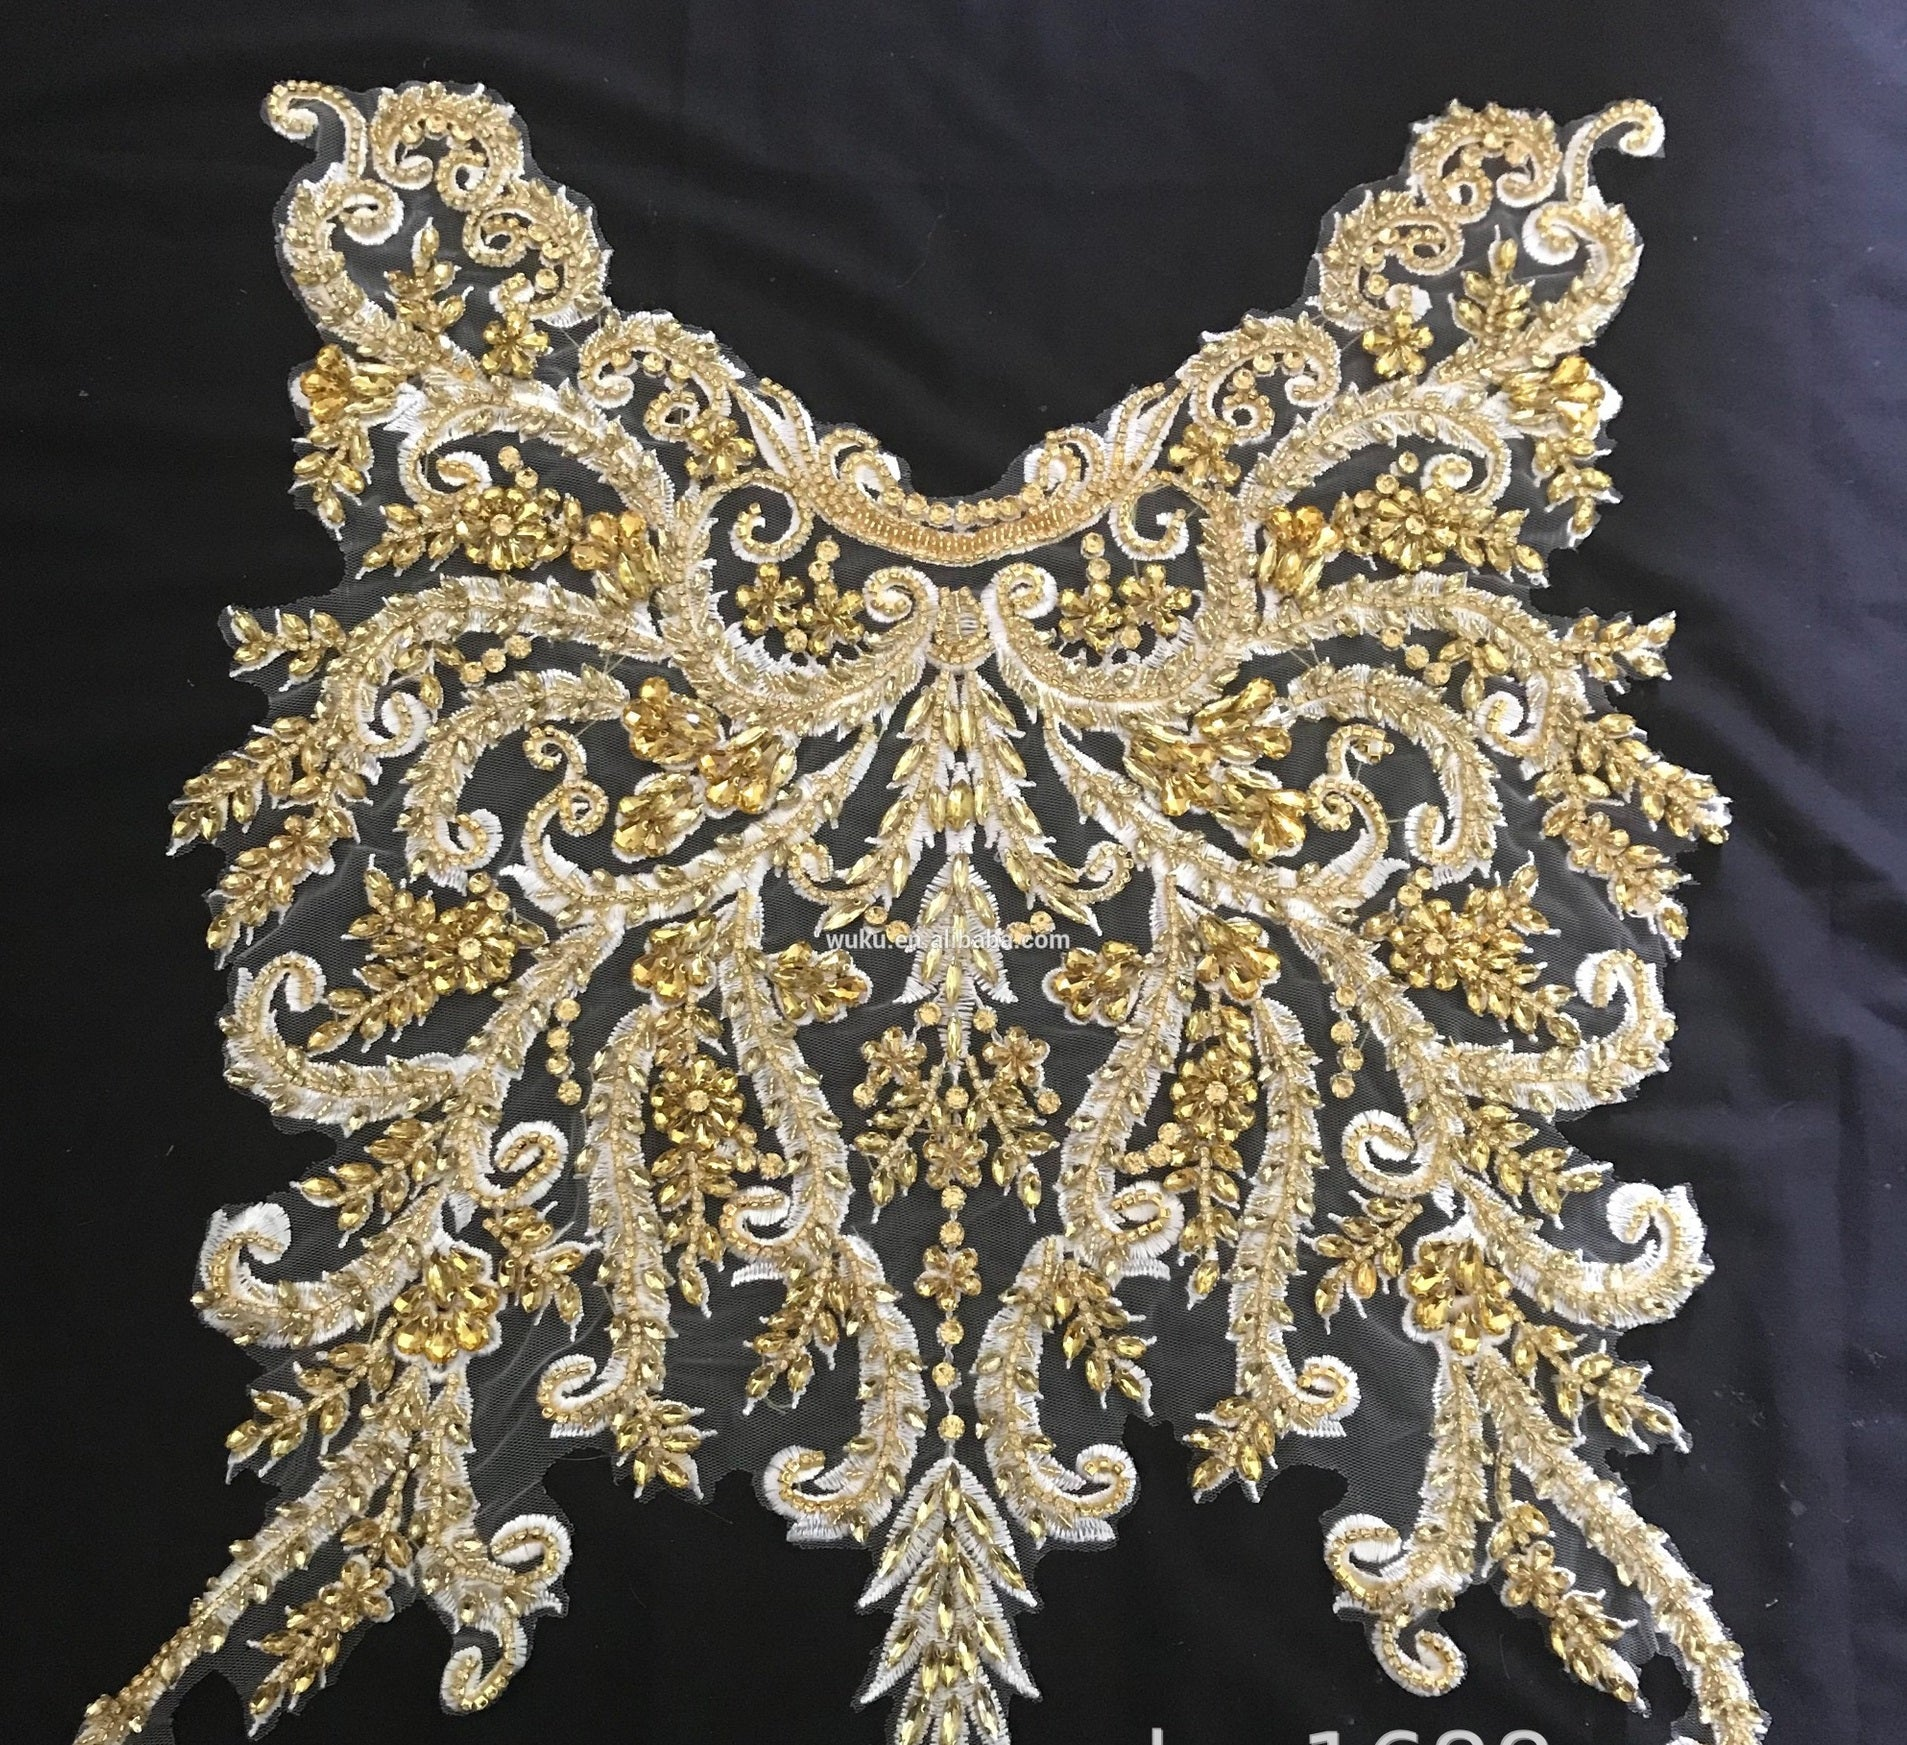 Golden Lace Rhinestone Decorative Applique